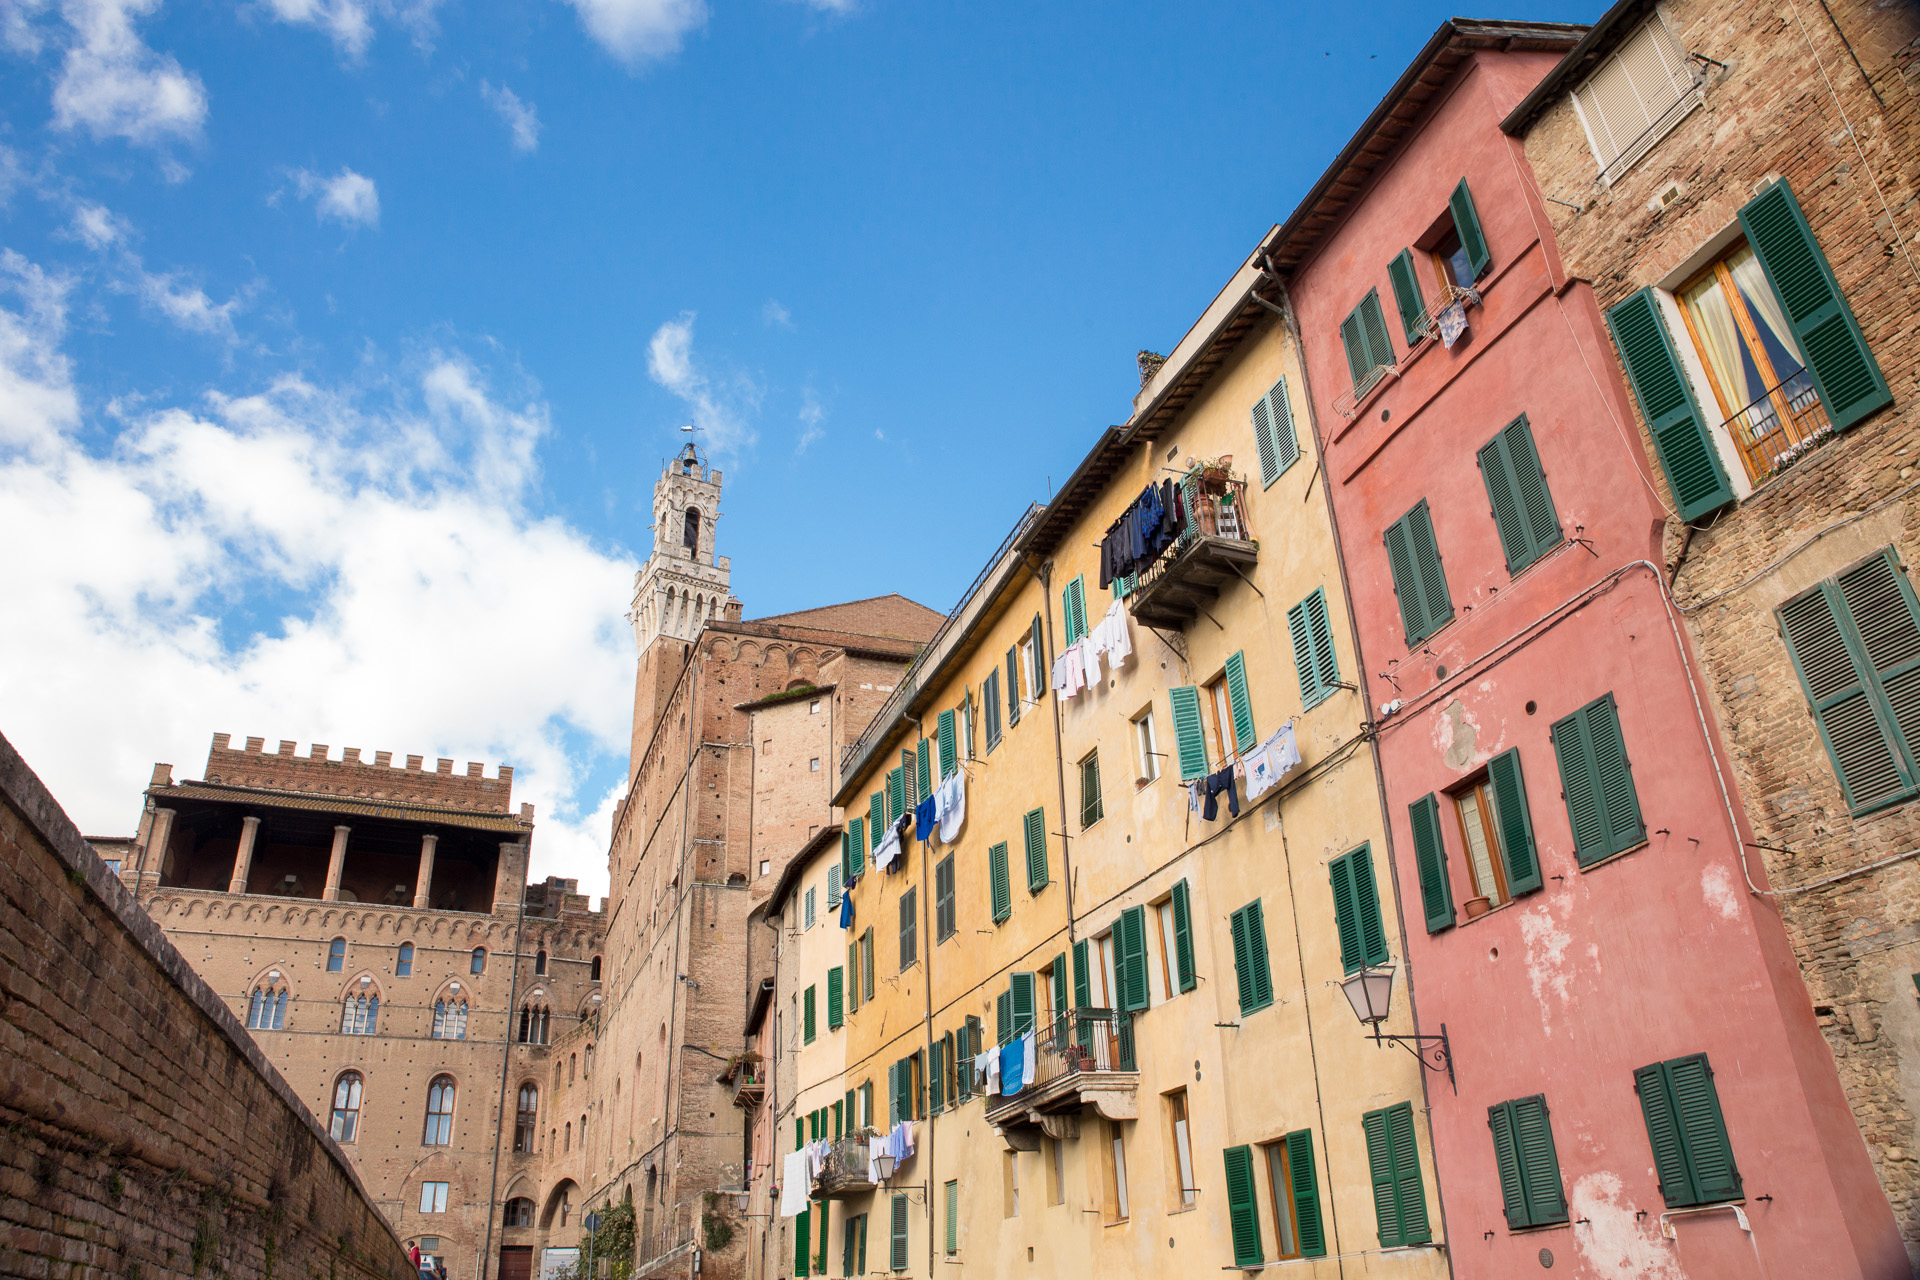 Siena [Photo credits: Goncalo Figueiredo for #playtuscany]